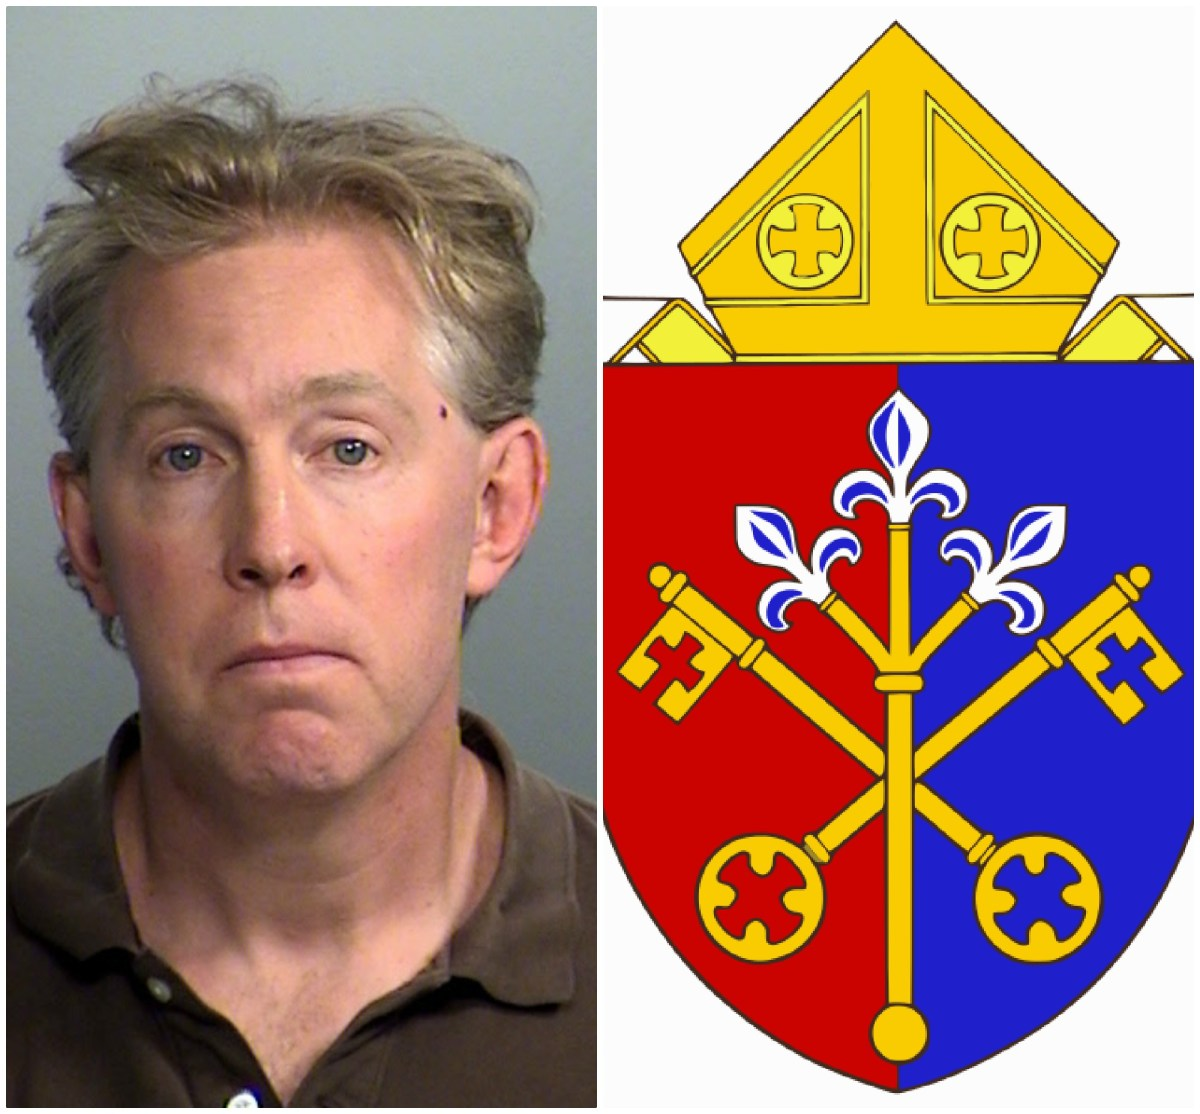 Fr. Luke Reese loses court appeal after savage beating; still calls himself priest in good standing